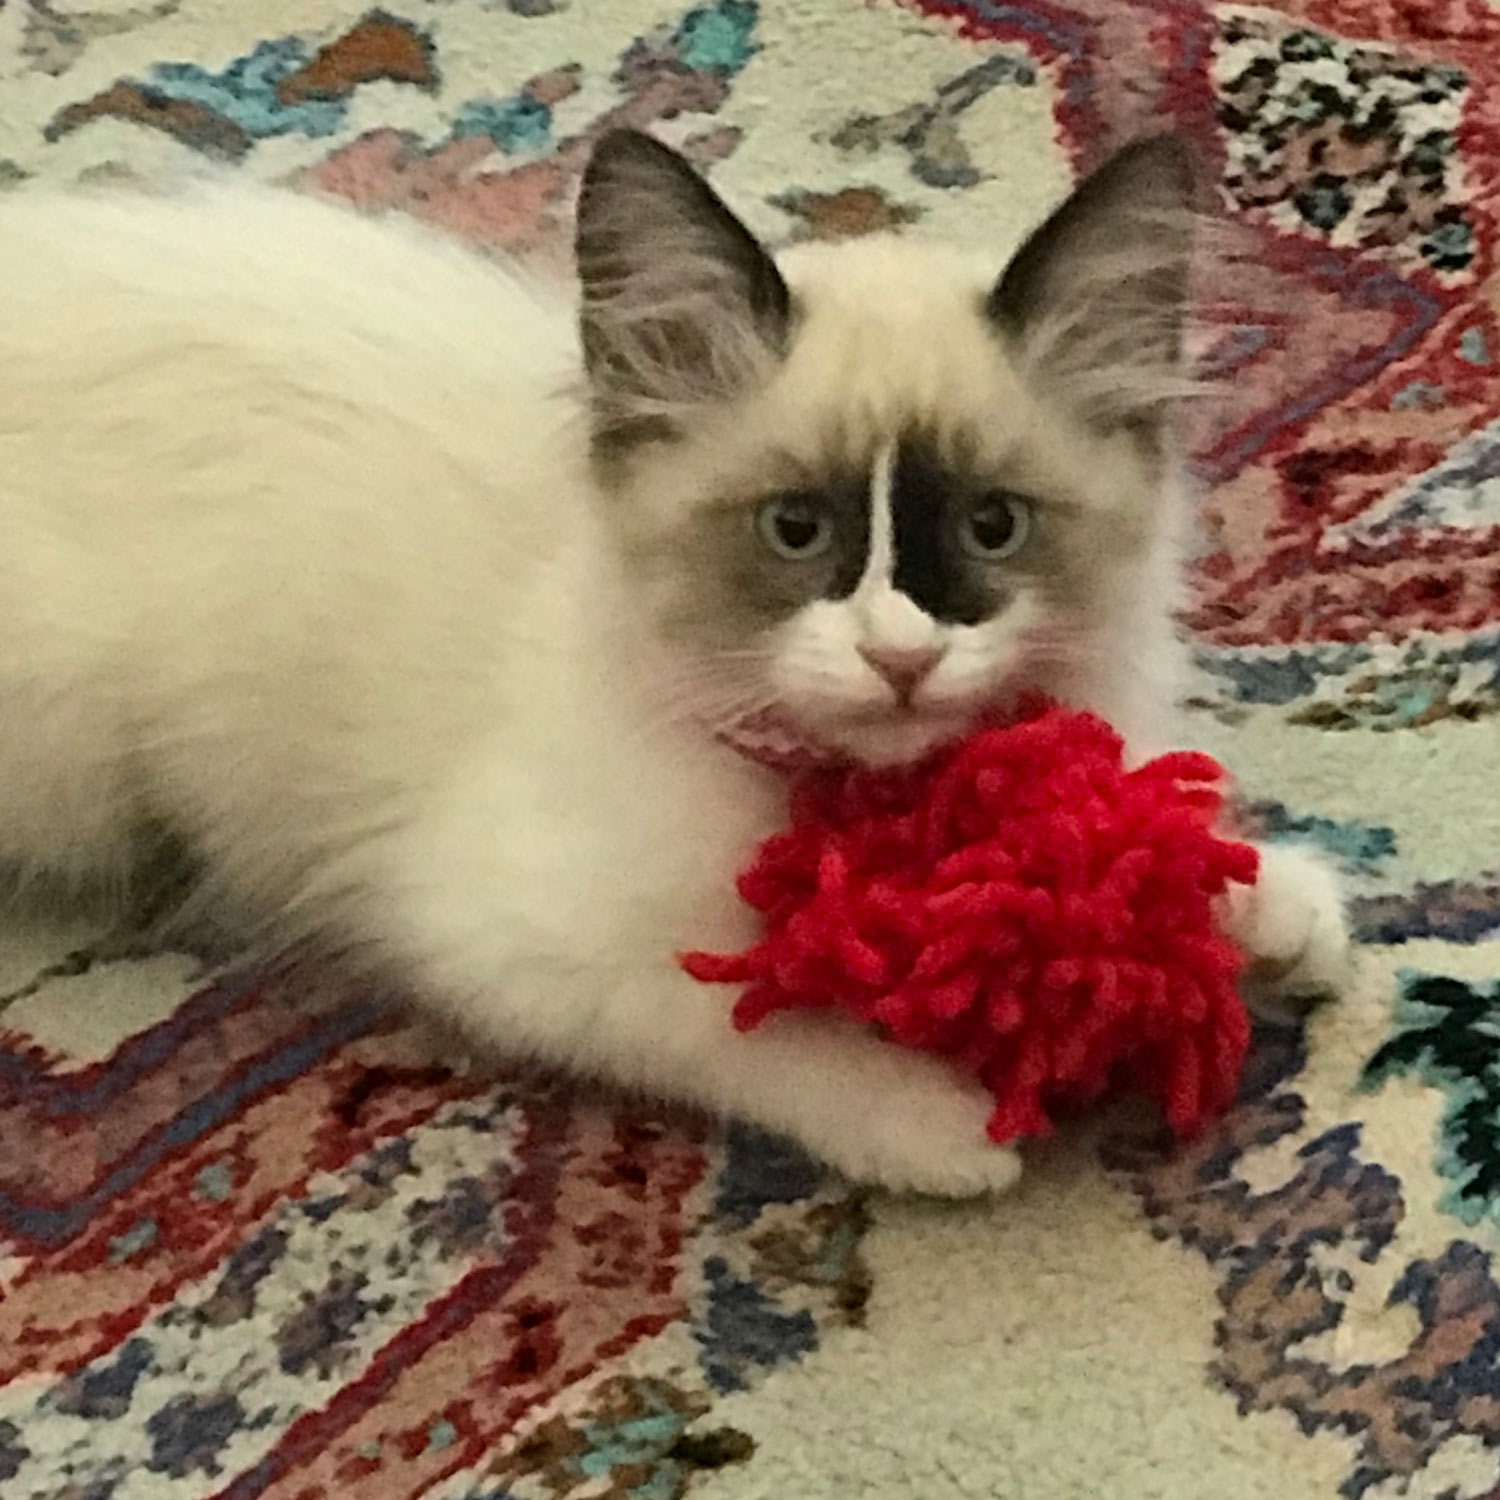 "Trina S. shared a picture of her kitten ""Smudgie"", adopted from Animal Care Services in Long Beach, California. Smudgie loves her red yarn toy."